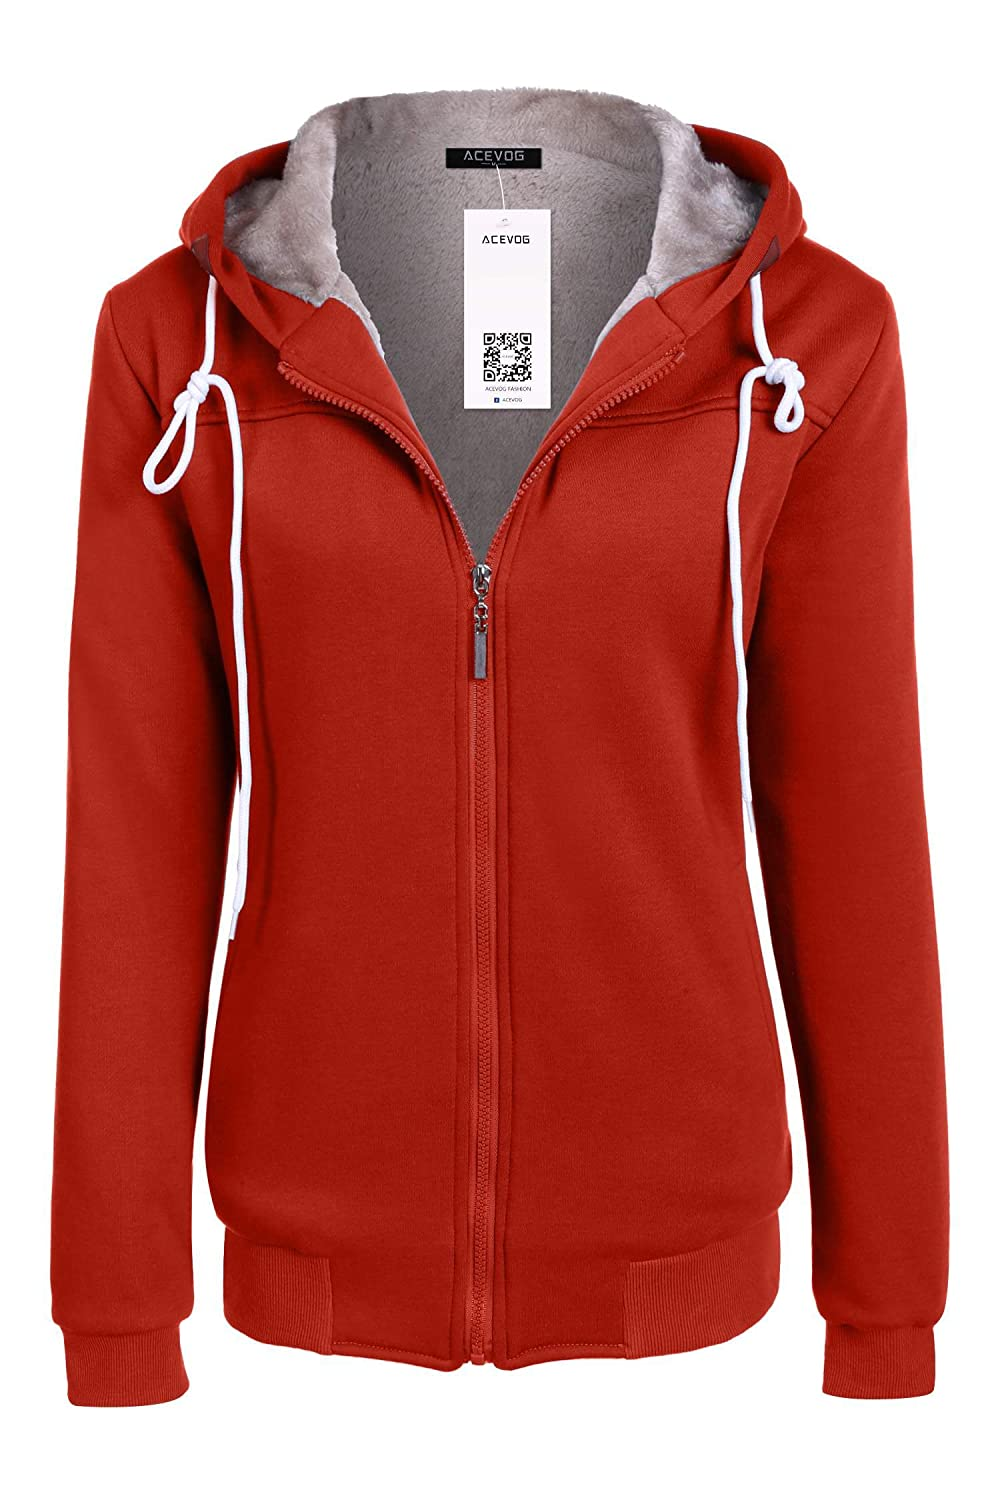 ACEVOG Women Hoody Zipper Long Sleeve Pullover Fleece Hooded Sweatshirt